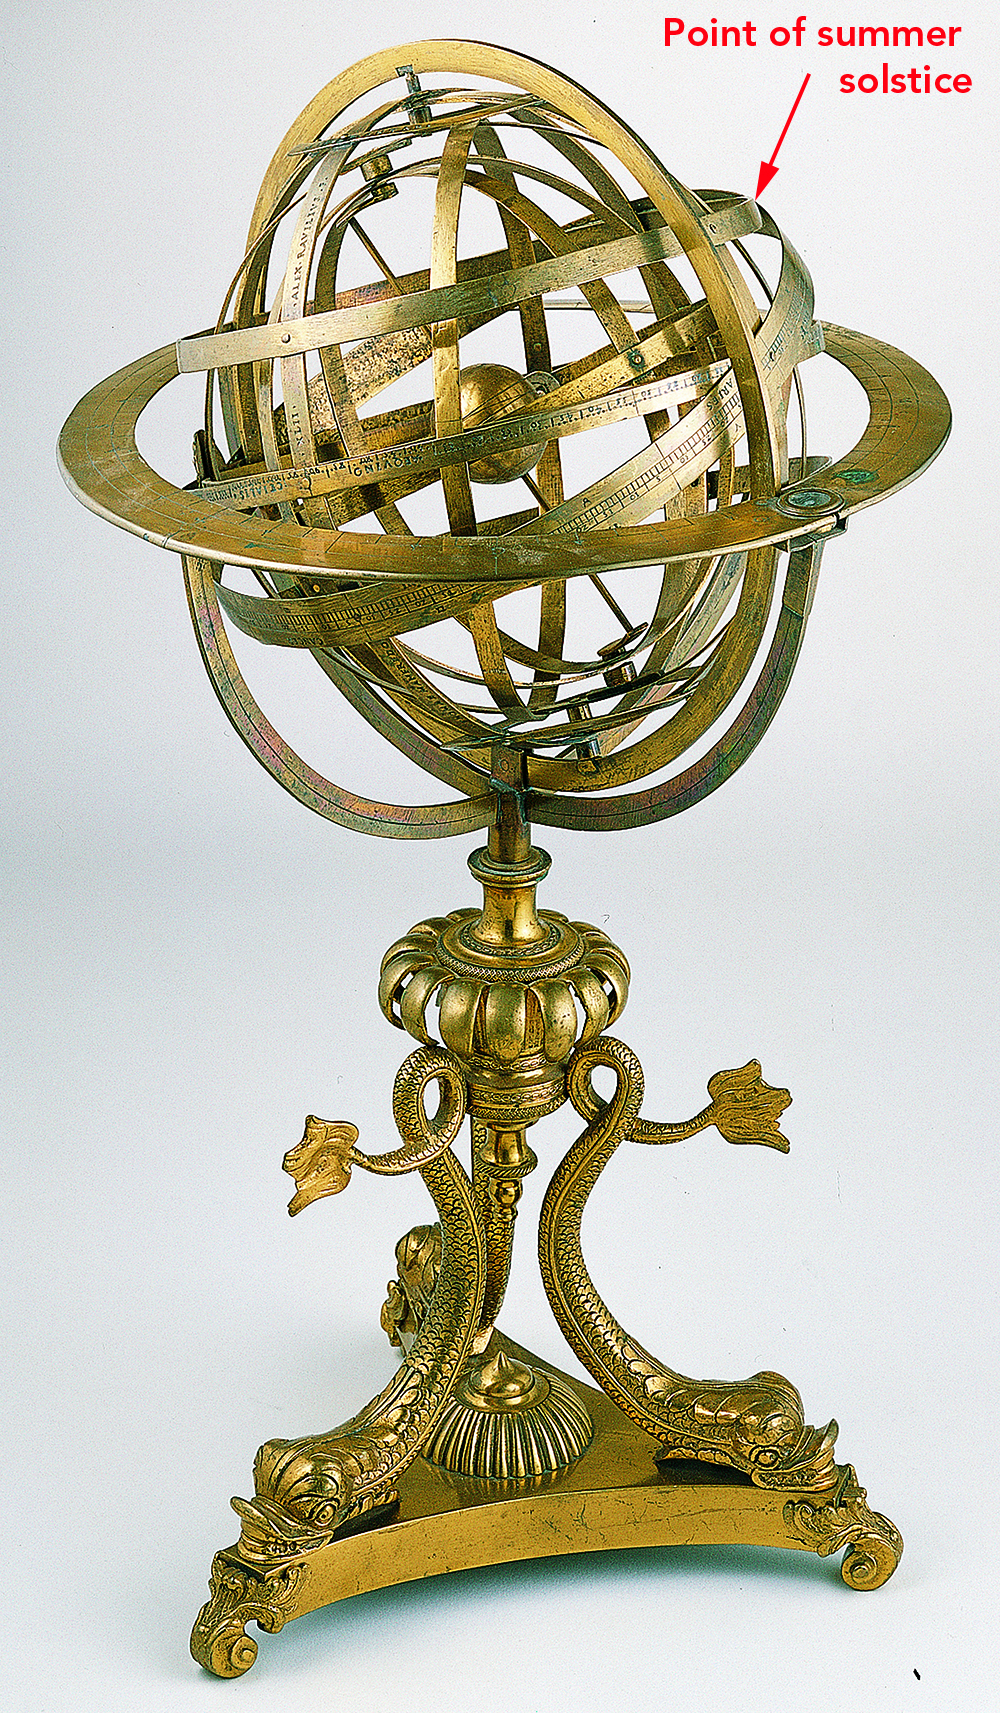 Figure 1: On an armillary sphere, the summer solstice is the place in the zodiac band that is farthest north of the ring or band representing the celestial equator.